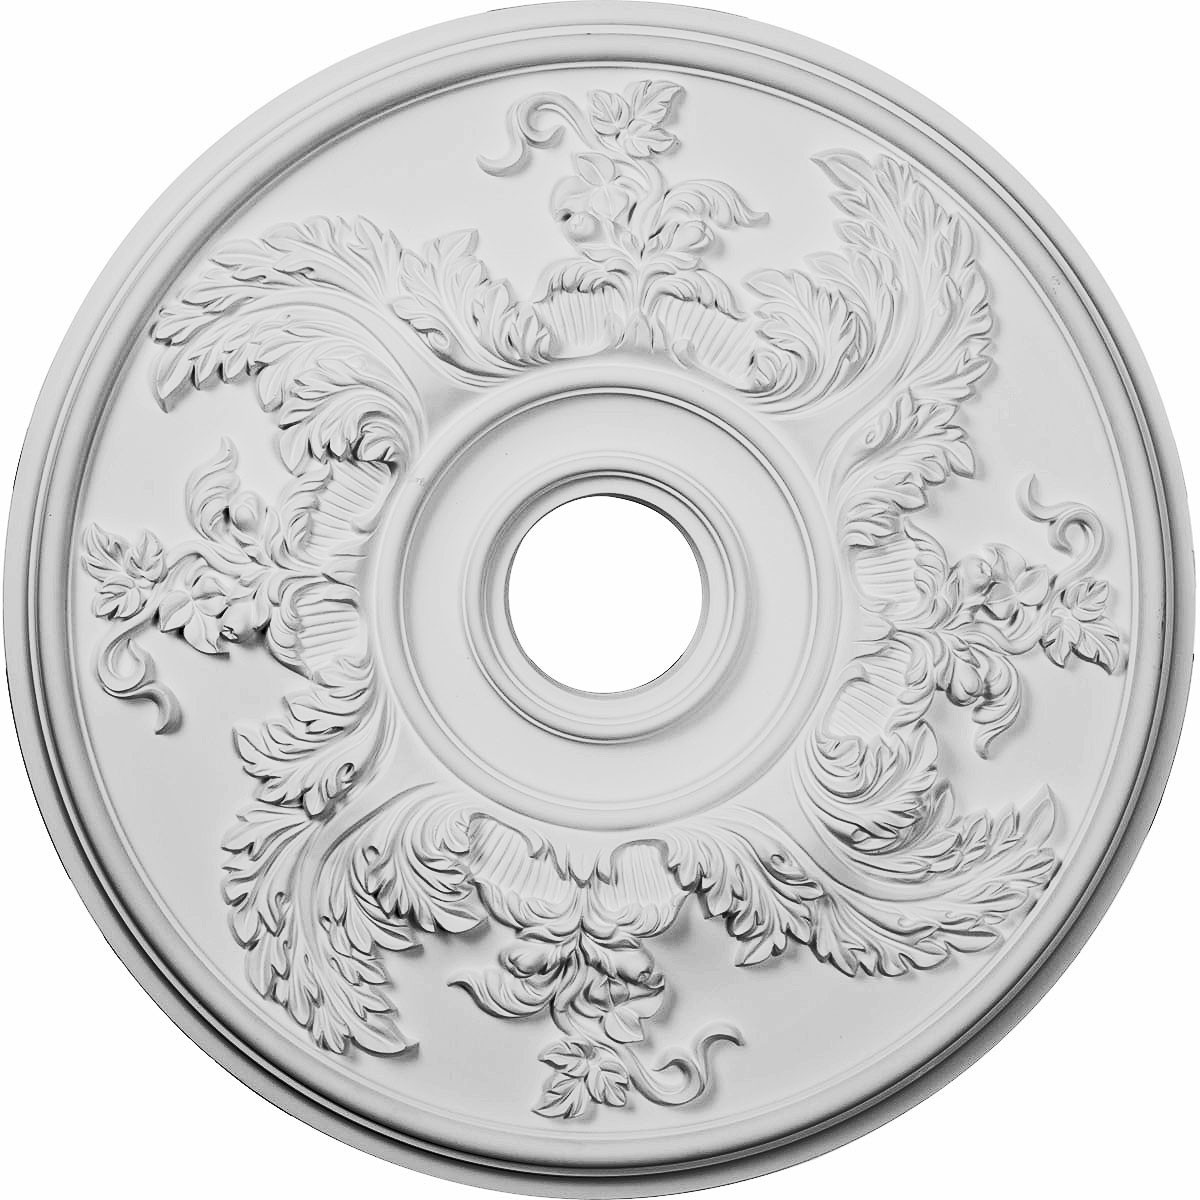 """EM-CM23AC - 23 5/8""""OD x 4 5/8""""ID x 1 7/8""""P Acanthus Twist Ceiling Medallion (Fits Canopies up to 8 3/8"""")"""